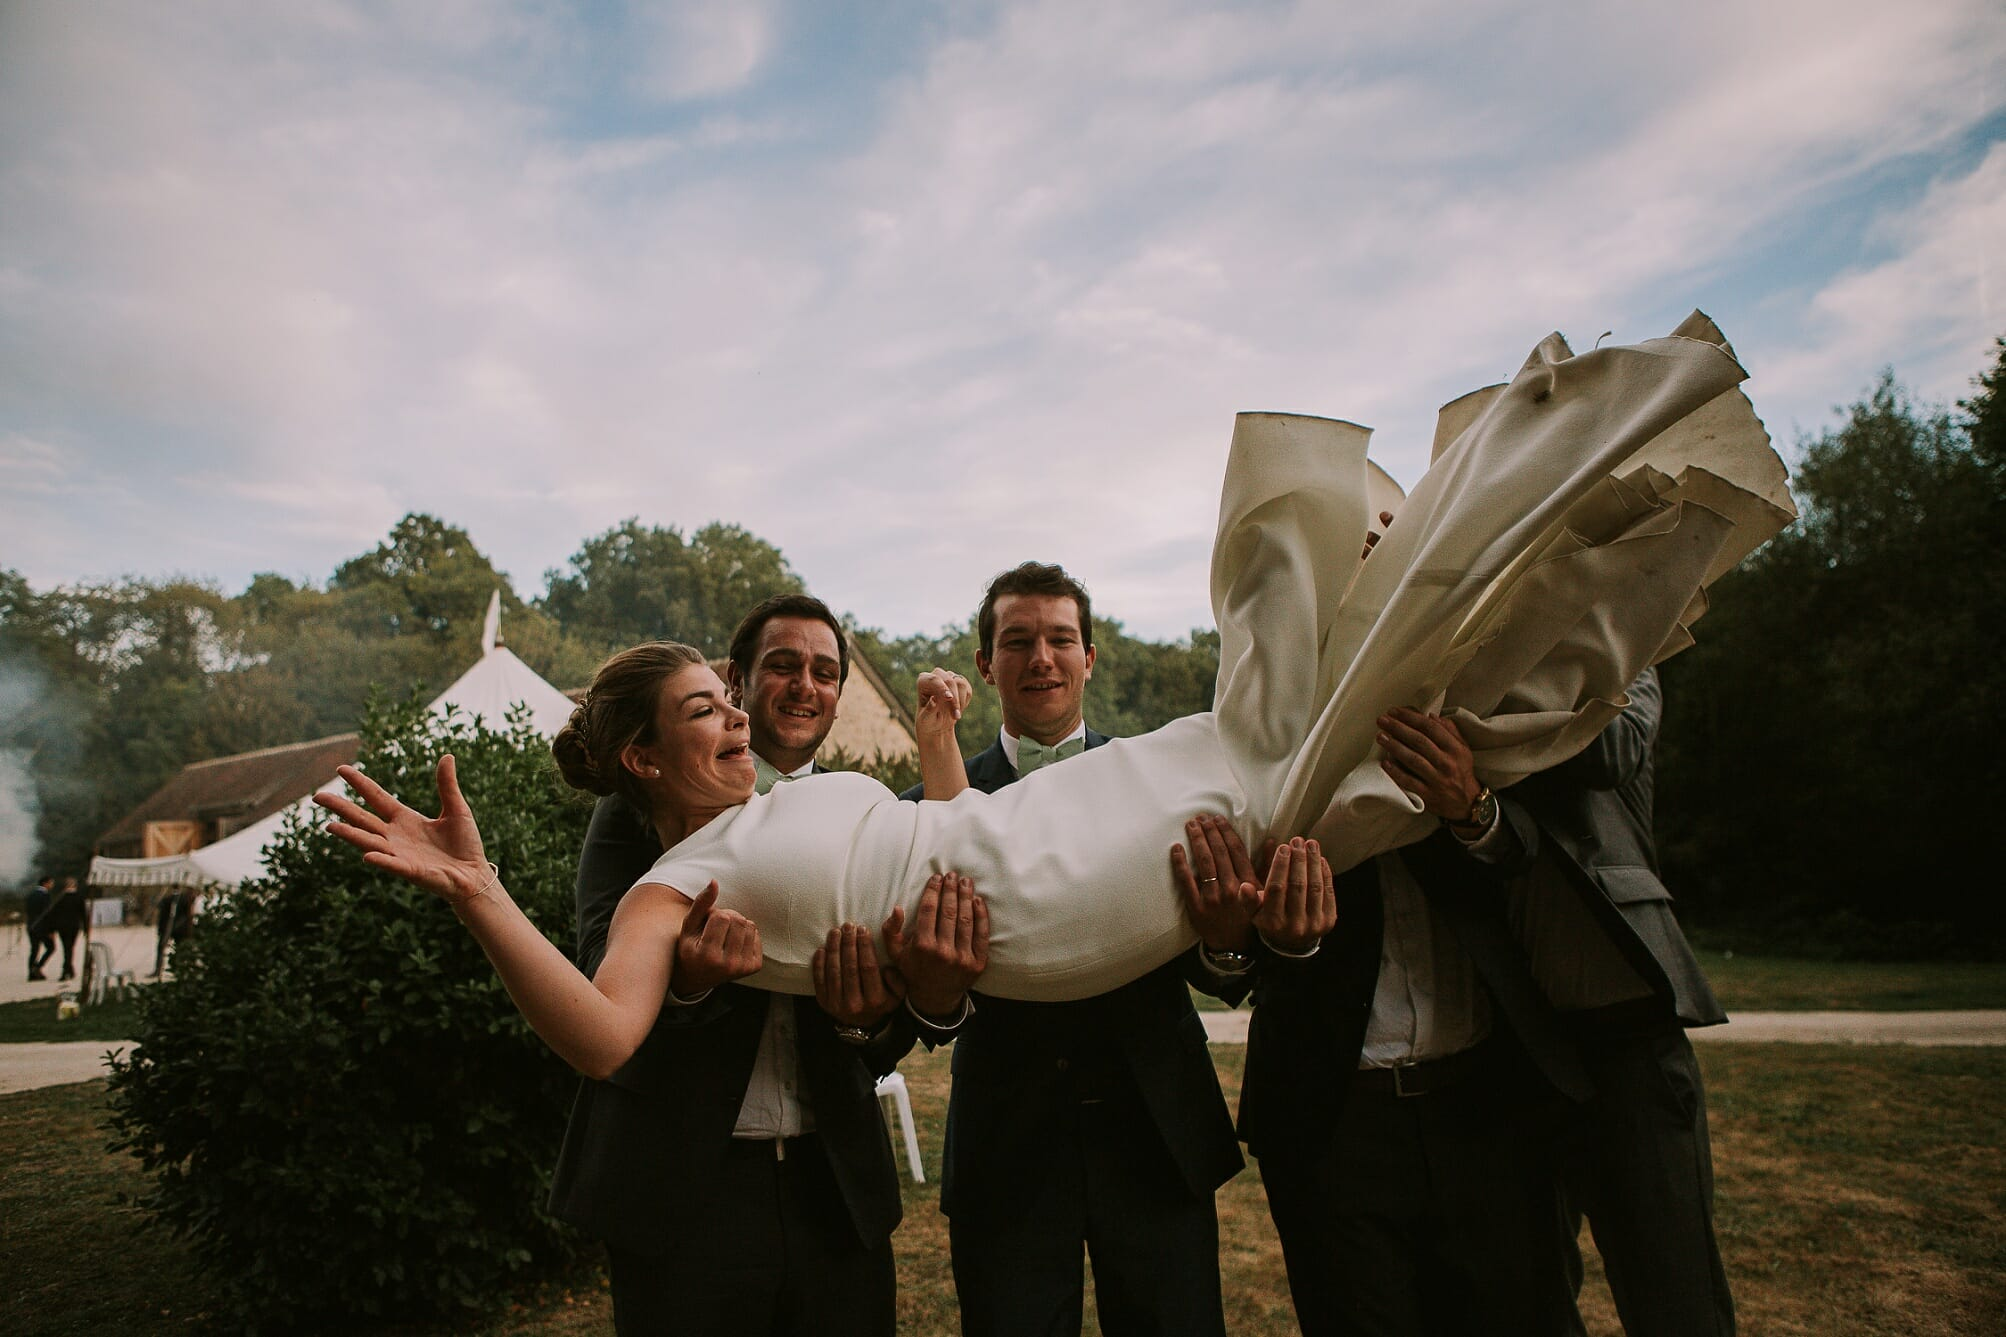 kateryna-photos-mariage-photographe-seigneurie-dalleray-chou-centre_0568